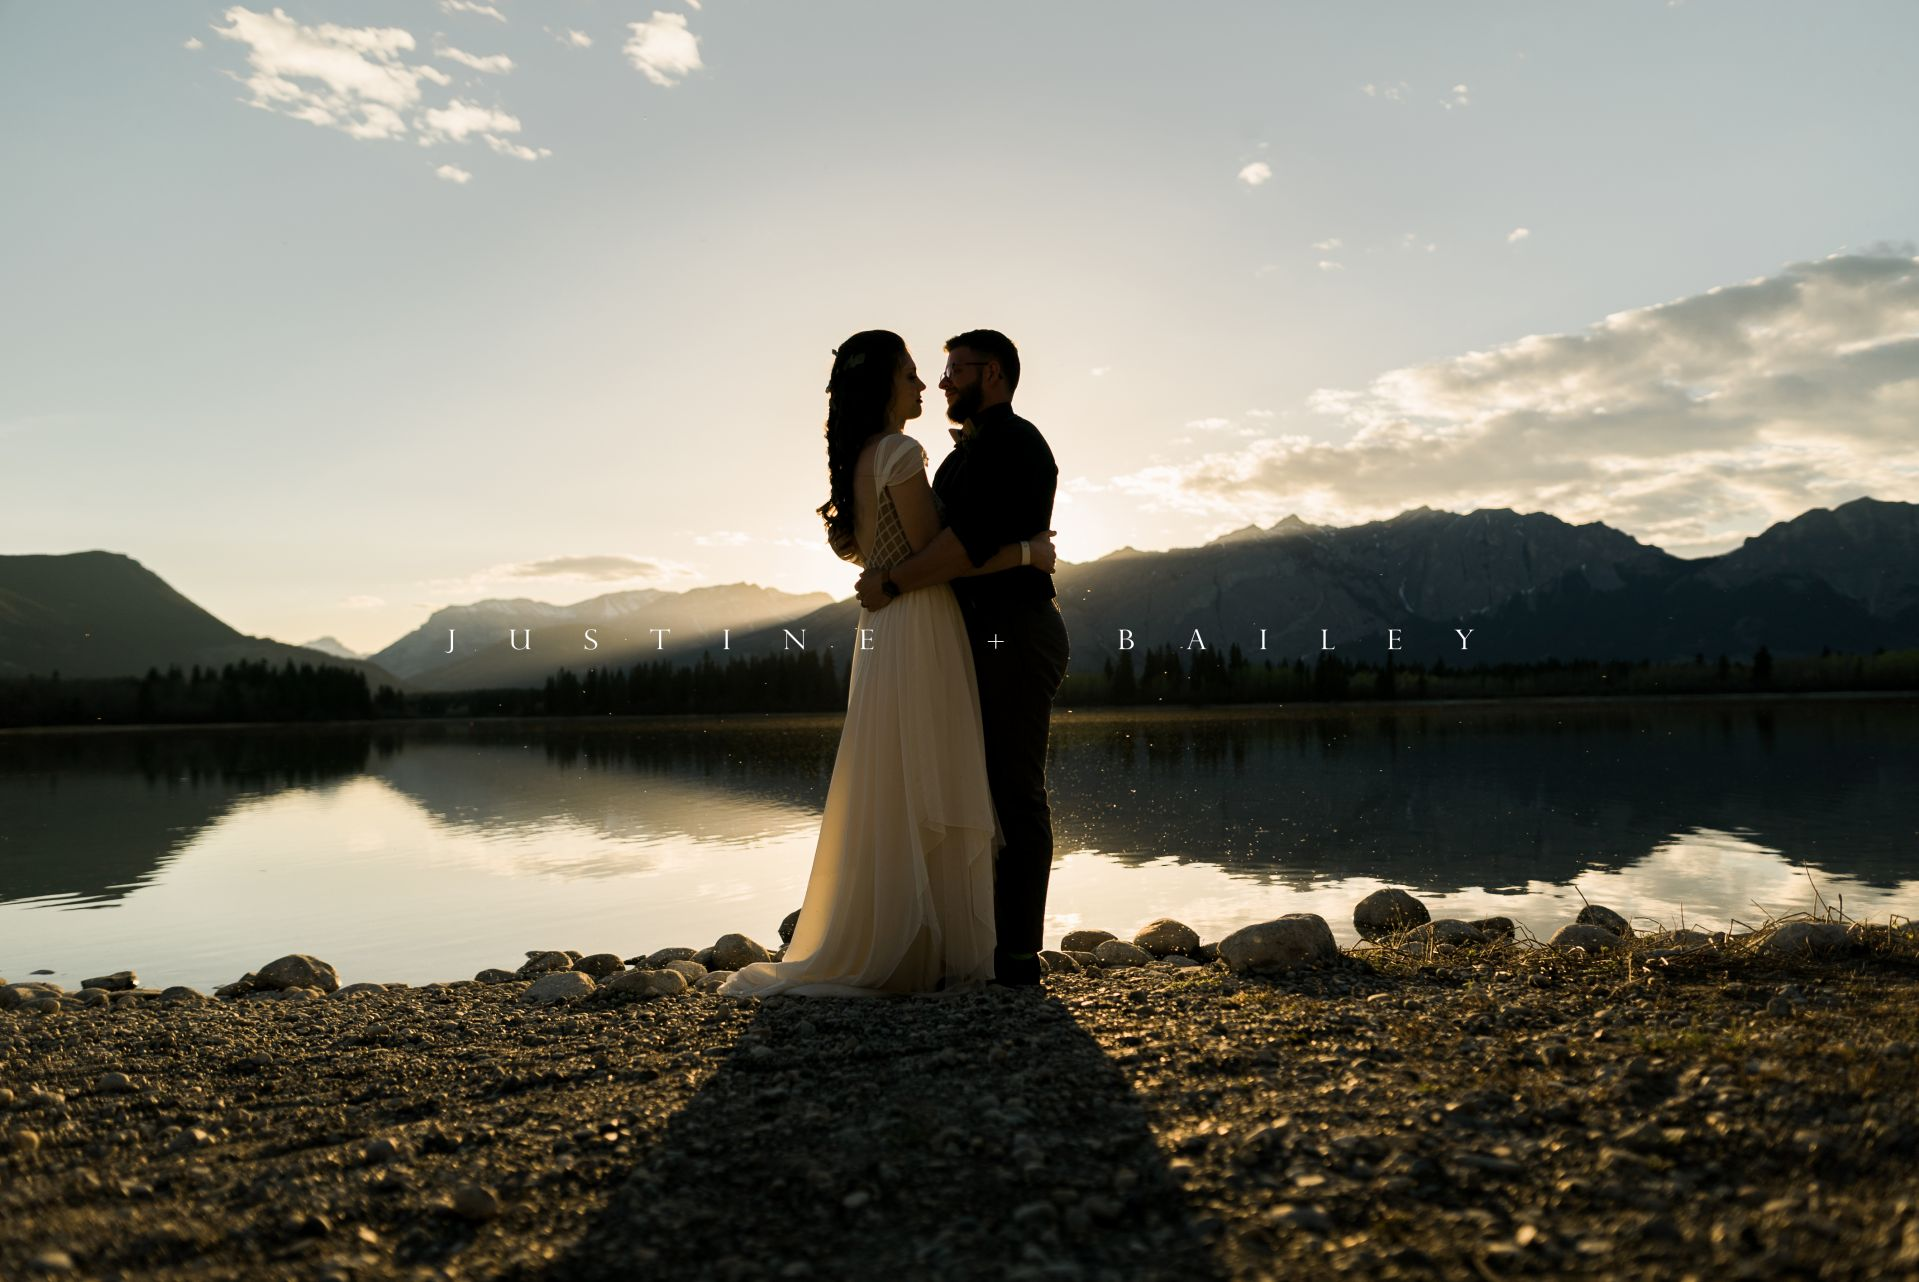 Justine + Bailey | Alberta, Canada | Bride + Groom